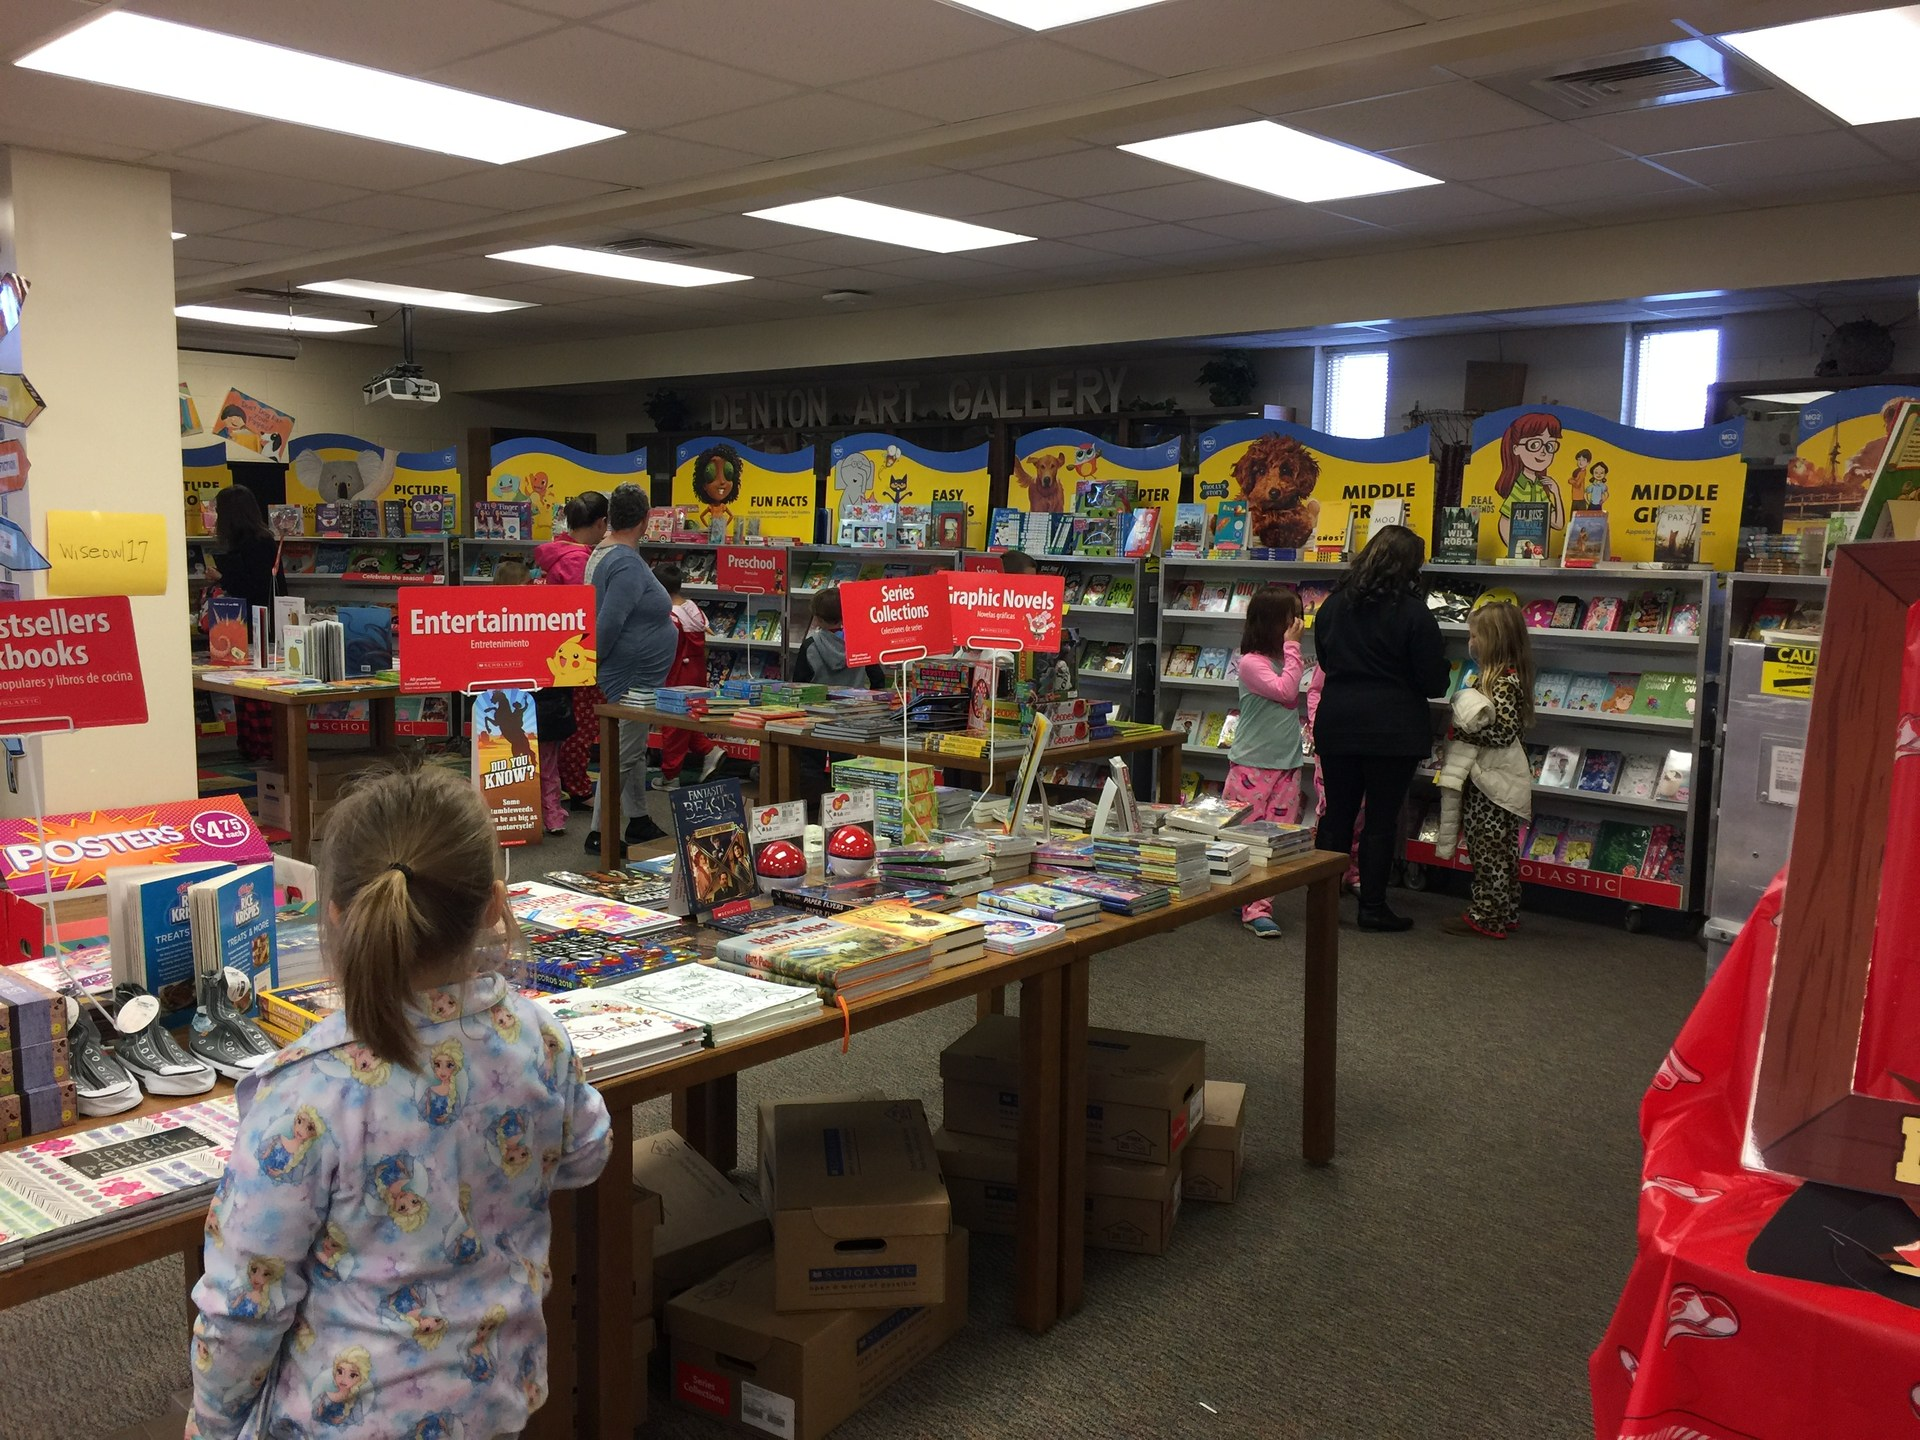 Everyone loves the book fair at Denton Elementary!